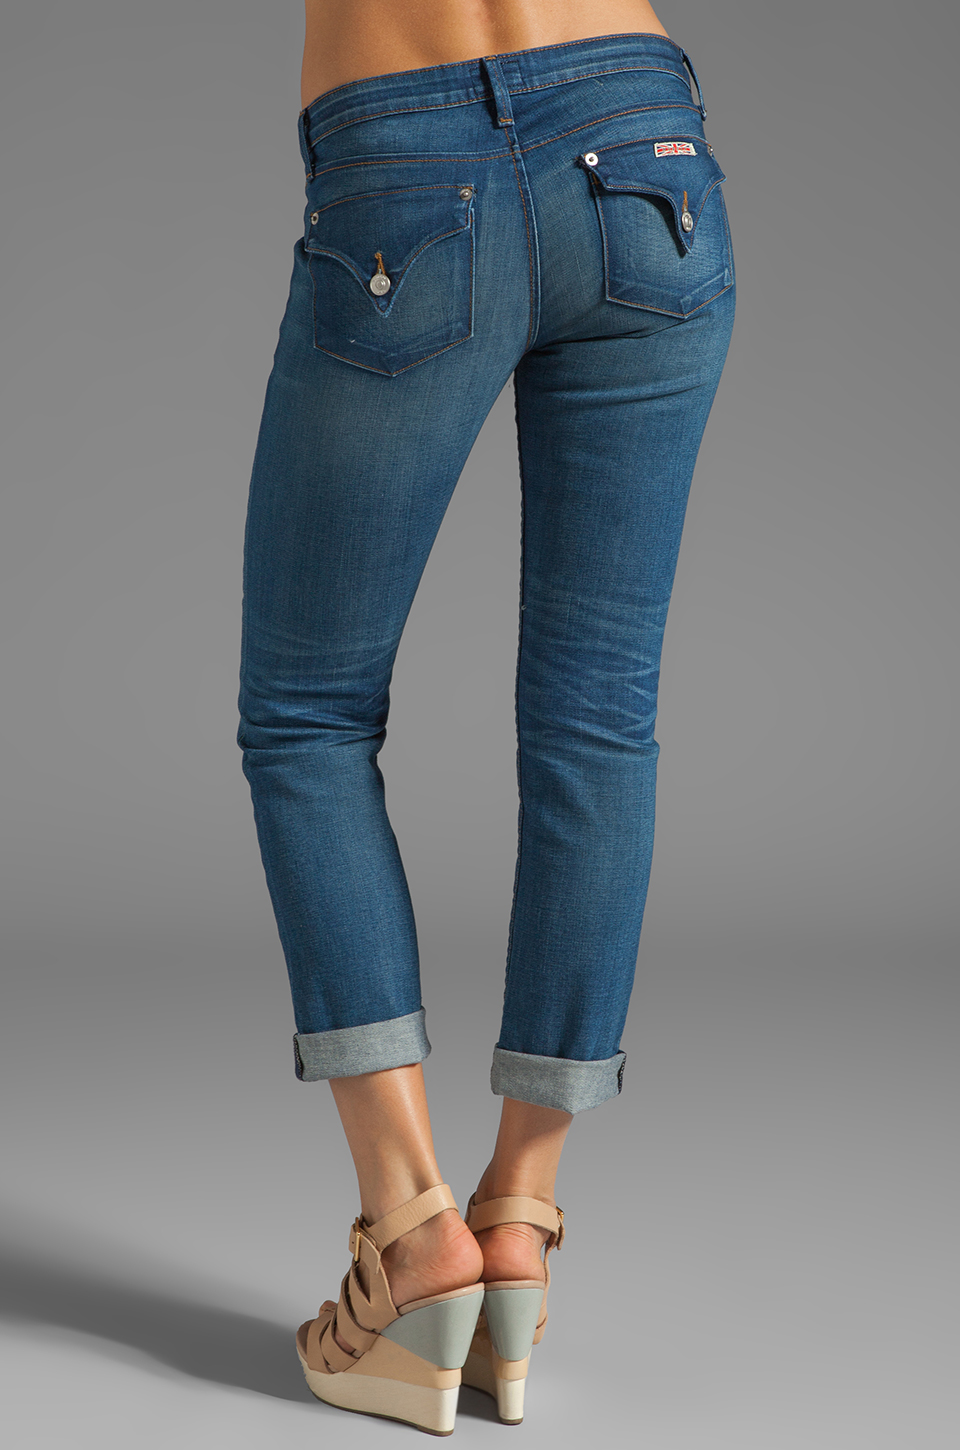 Hudson Jeans Bacara Straight Cuffed in Curtis